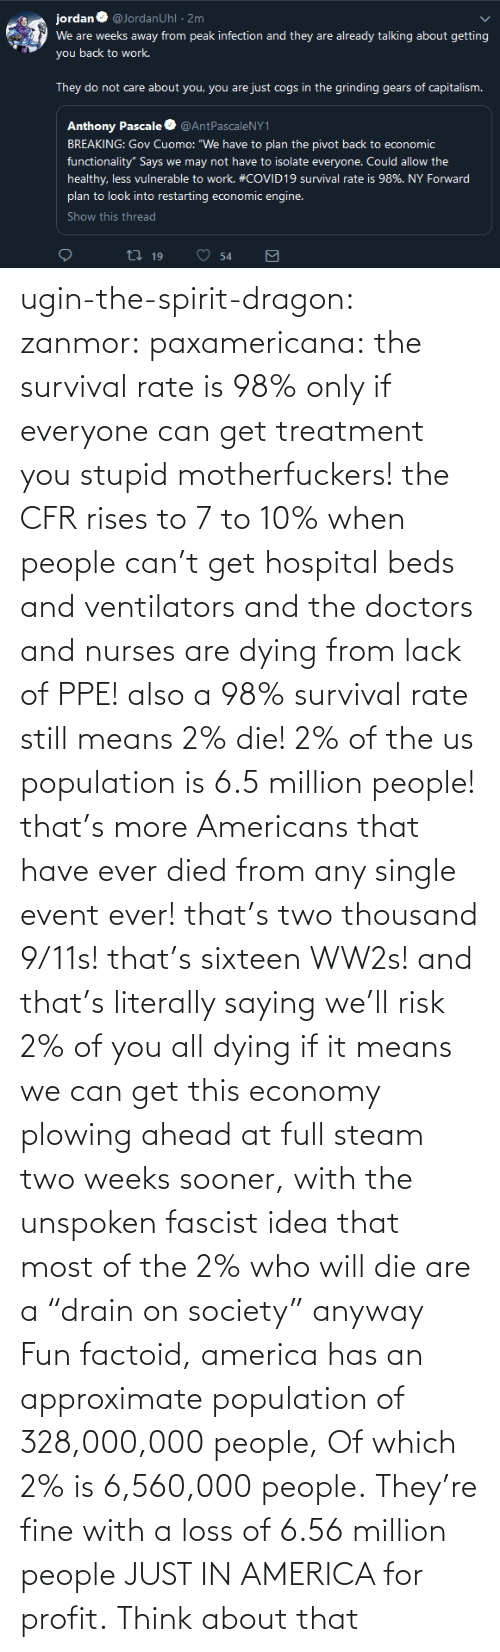 "fine: ugin-the-spirit-dragon: zanmor:   paxamericana:  the survival rate is 98% only if everyone can get treatment you stupid motherfuckers! the CFR rises to 7 to 10% when people can't get hospital beds and ventilators and the doctors and nurses are dying from lack of PPE!  also a 98% survival rate still means 2% die! 2% of the us population is 6.5 million people! that's more Americans that have ever died from any single event ever! that's two thousand 9/11s! that's sixteen WW2s!  and that's literally saying we'll risk 2% of you all dying if it means we can get this economy plowing ahead at full steam two weeks sooner, with the unspoken fascist idea that most of the 2% who will die are a ""drain on society"" anyway    Fun factoid, america has an approximate population of 328,000,000 people,  Of which 2% is 6,560,000 people. They're fine with a loss of 6.56 million people JUST IN AMERICA for profit. Think about that"